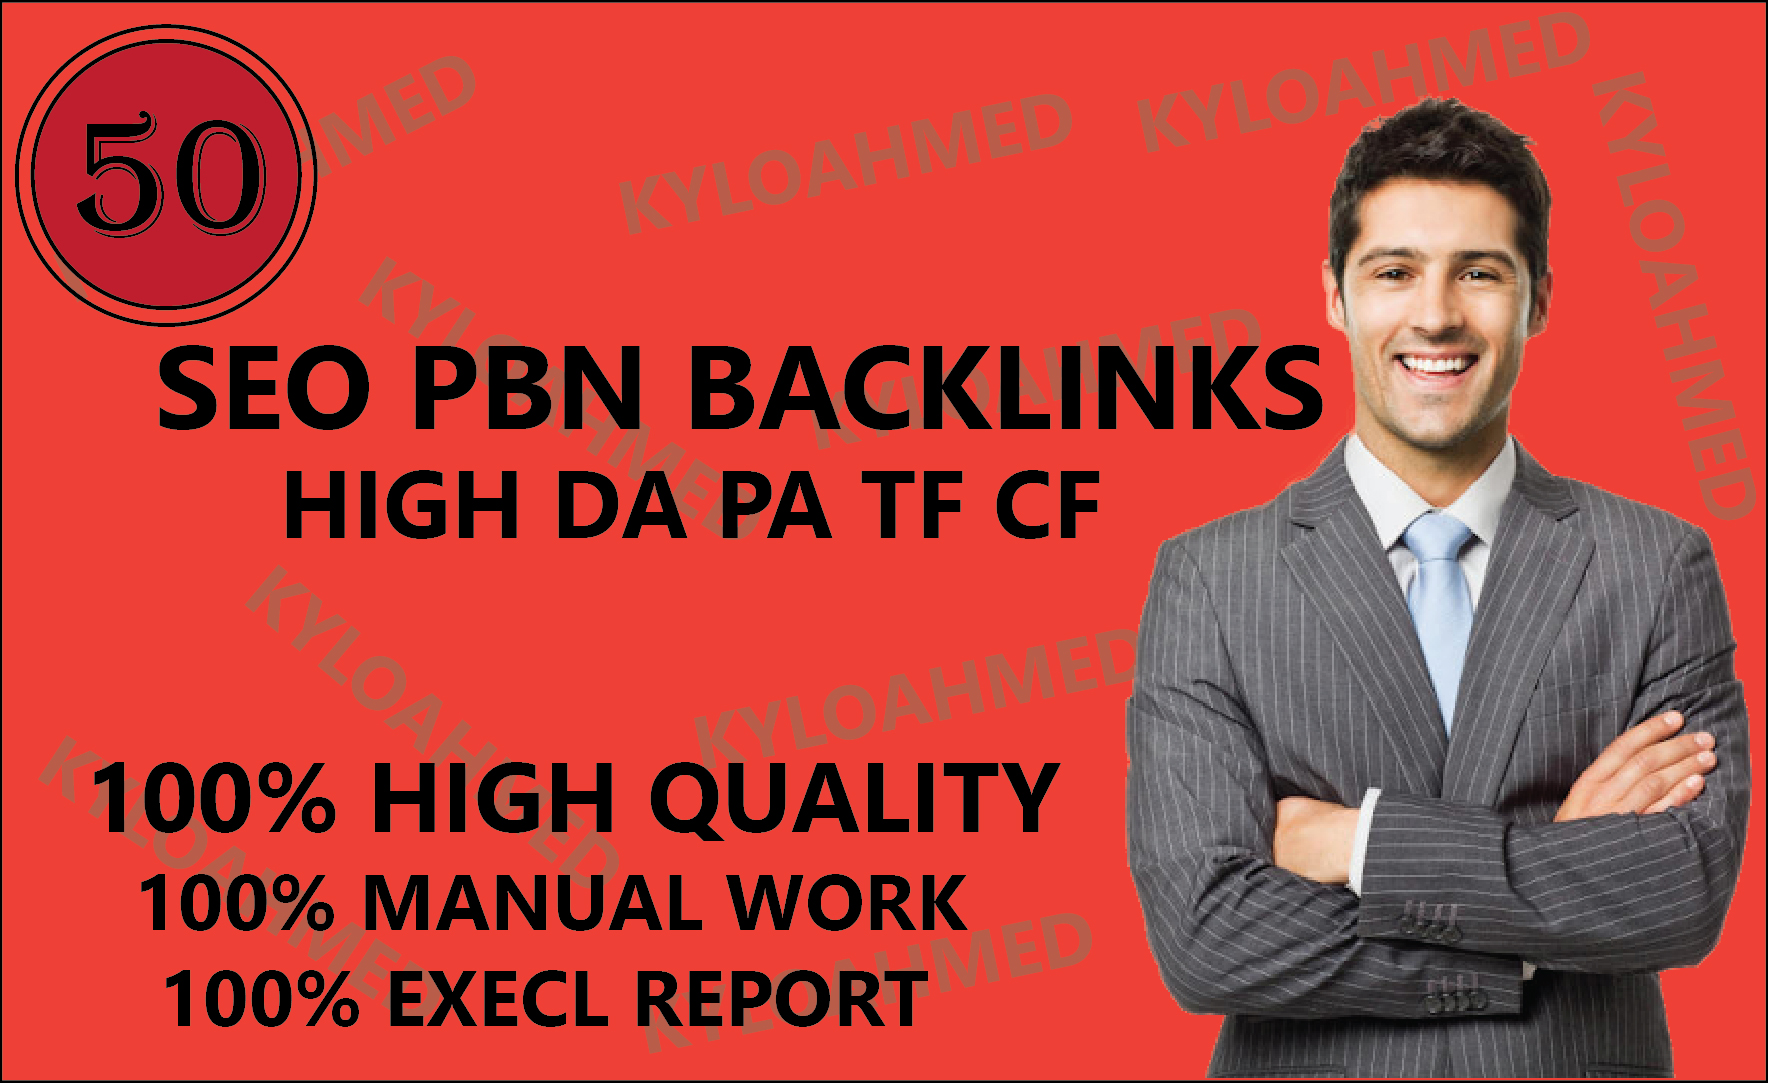 I will provide 50 seo pbn backlinks high da pa tf cf